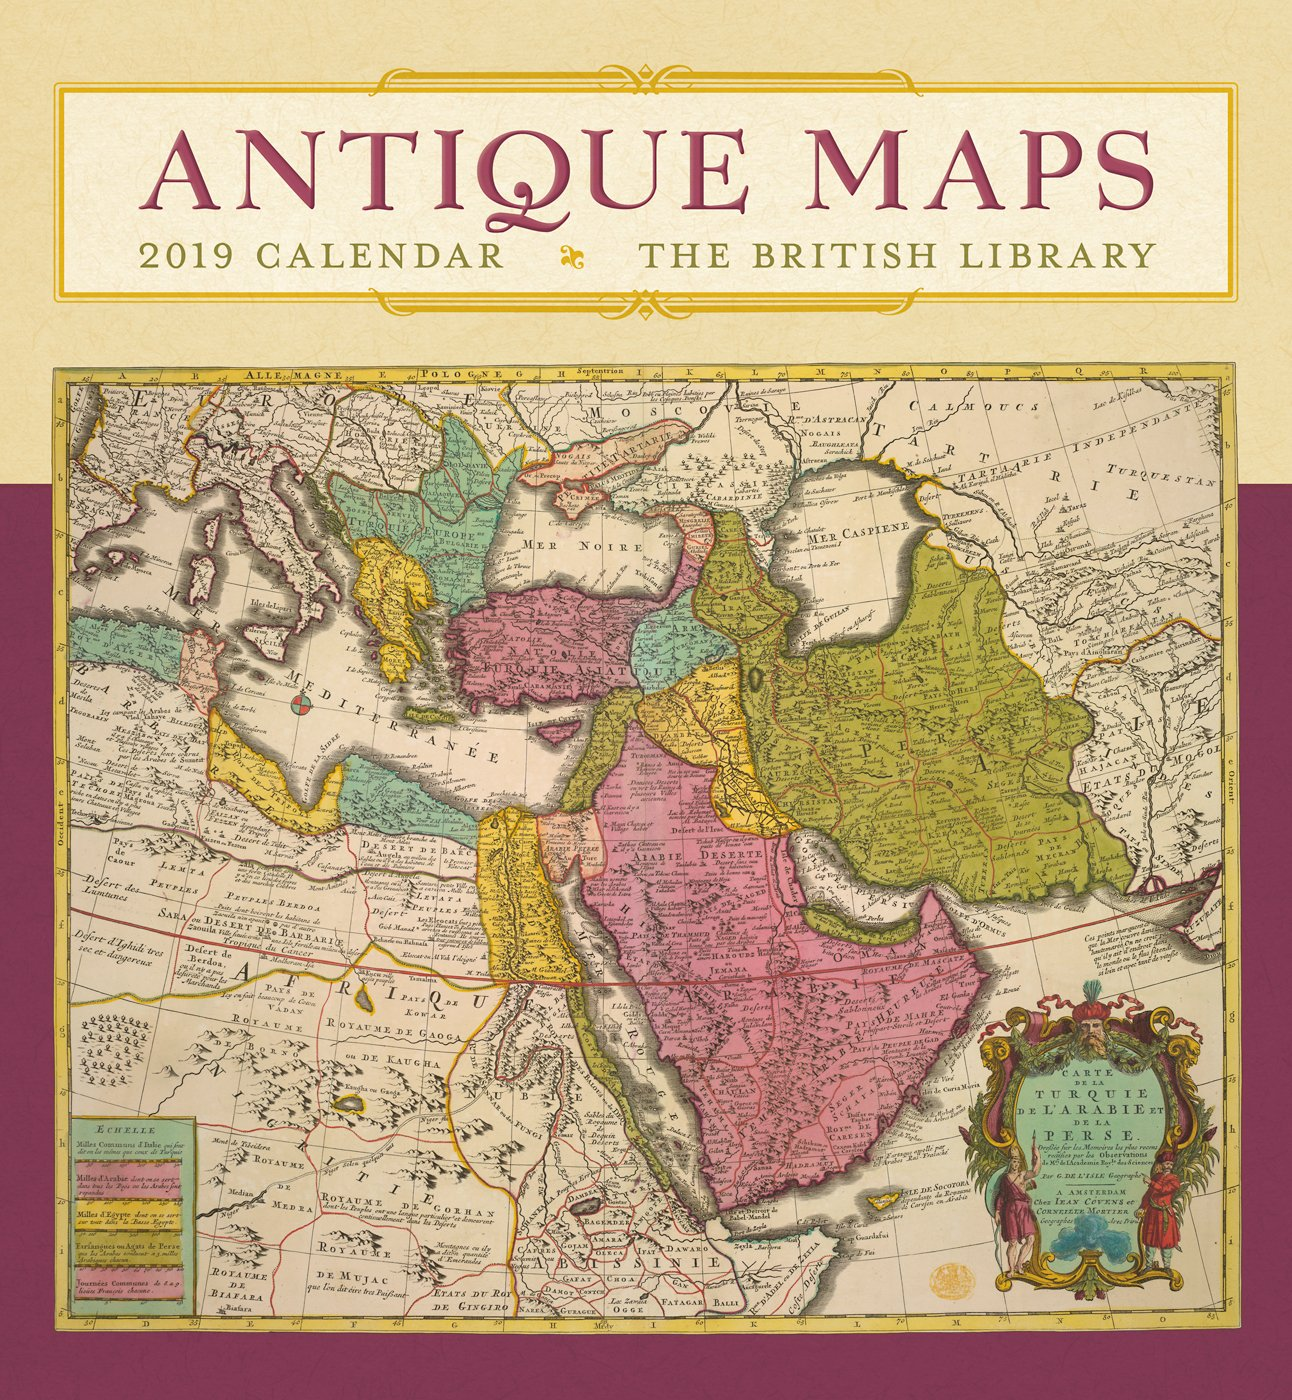 Antique Maps 2019 Wall Calendar by Pomegranate